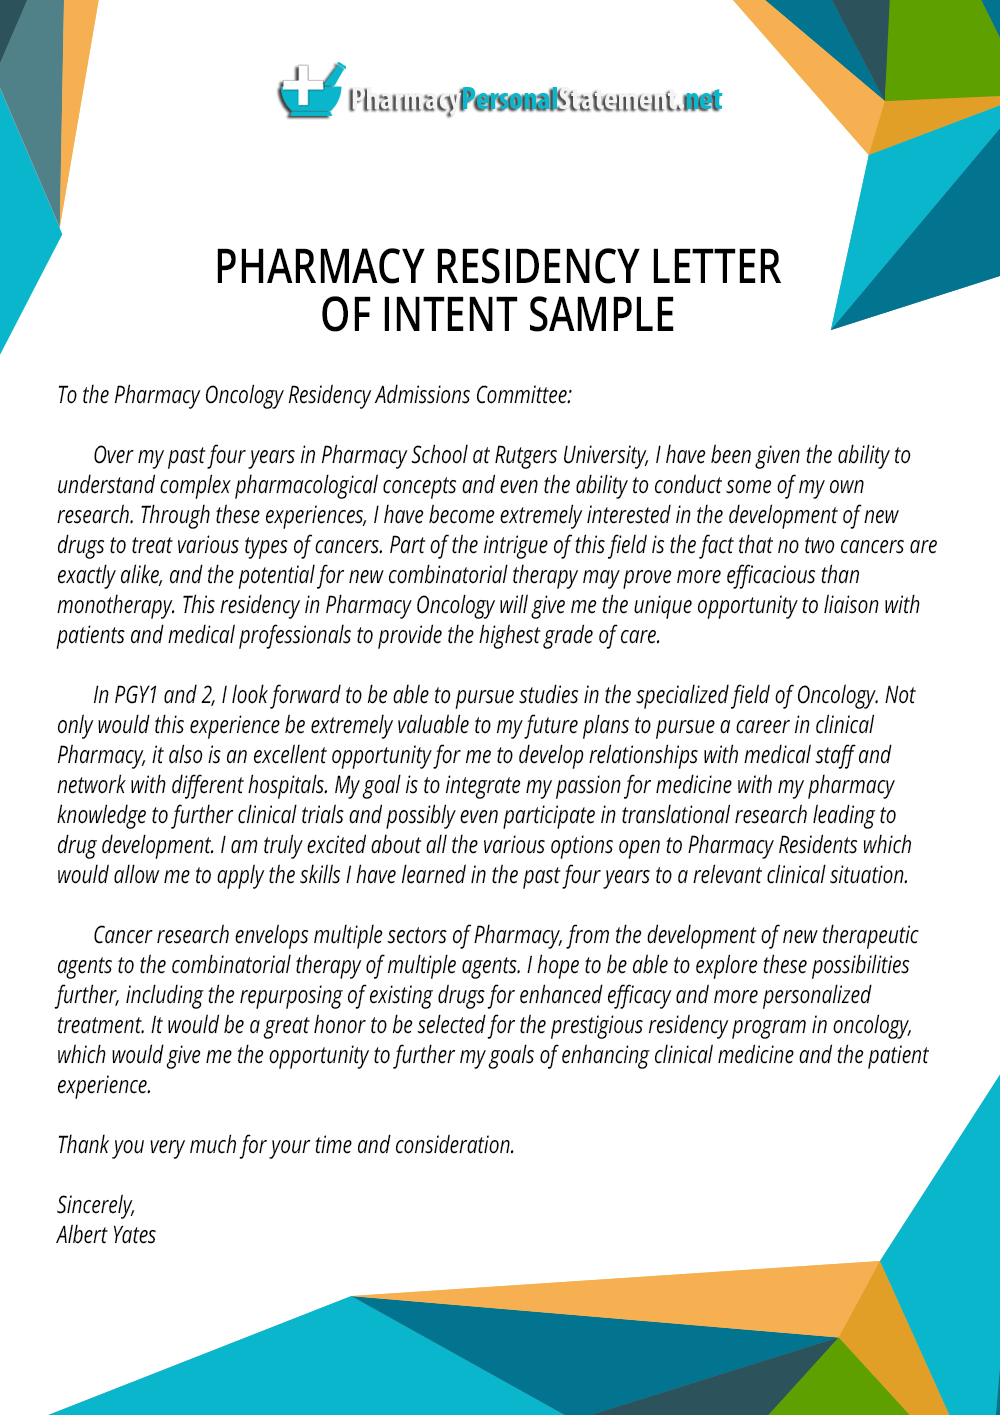 pharmacypersonalstatement net our pharmacy school  sample pharmacy residency letter of intent writing personal statement for pharmacy school